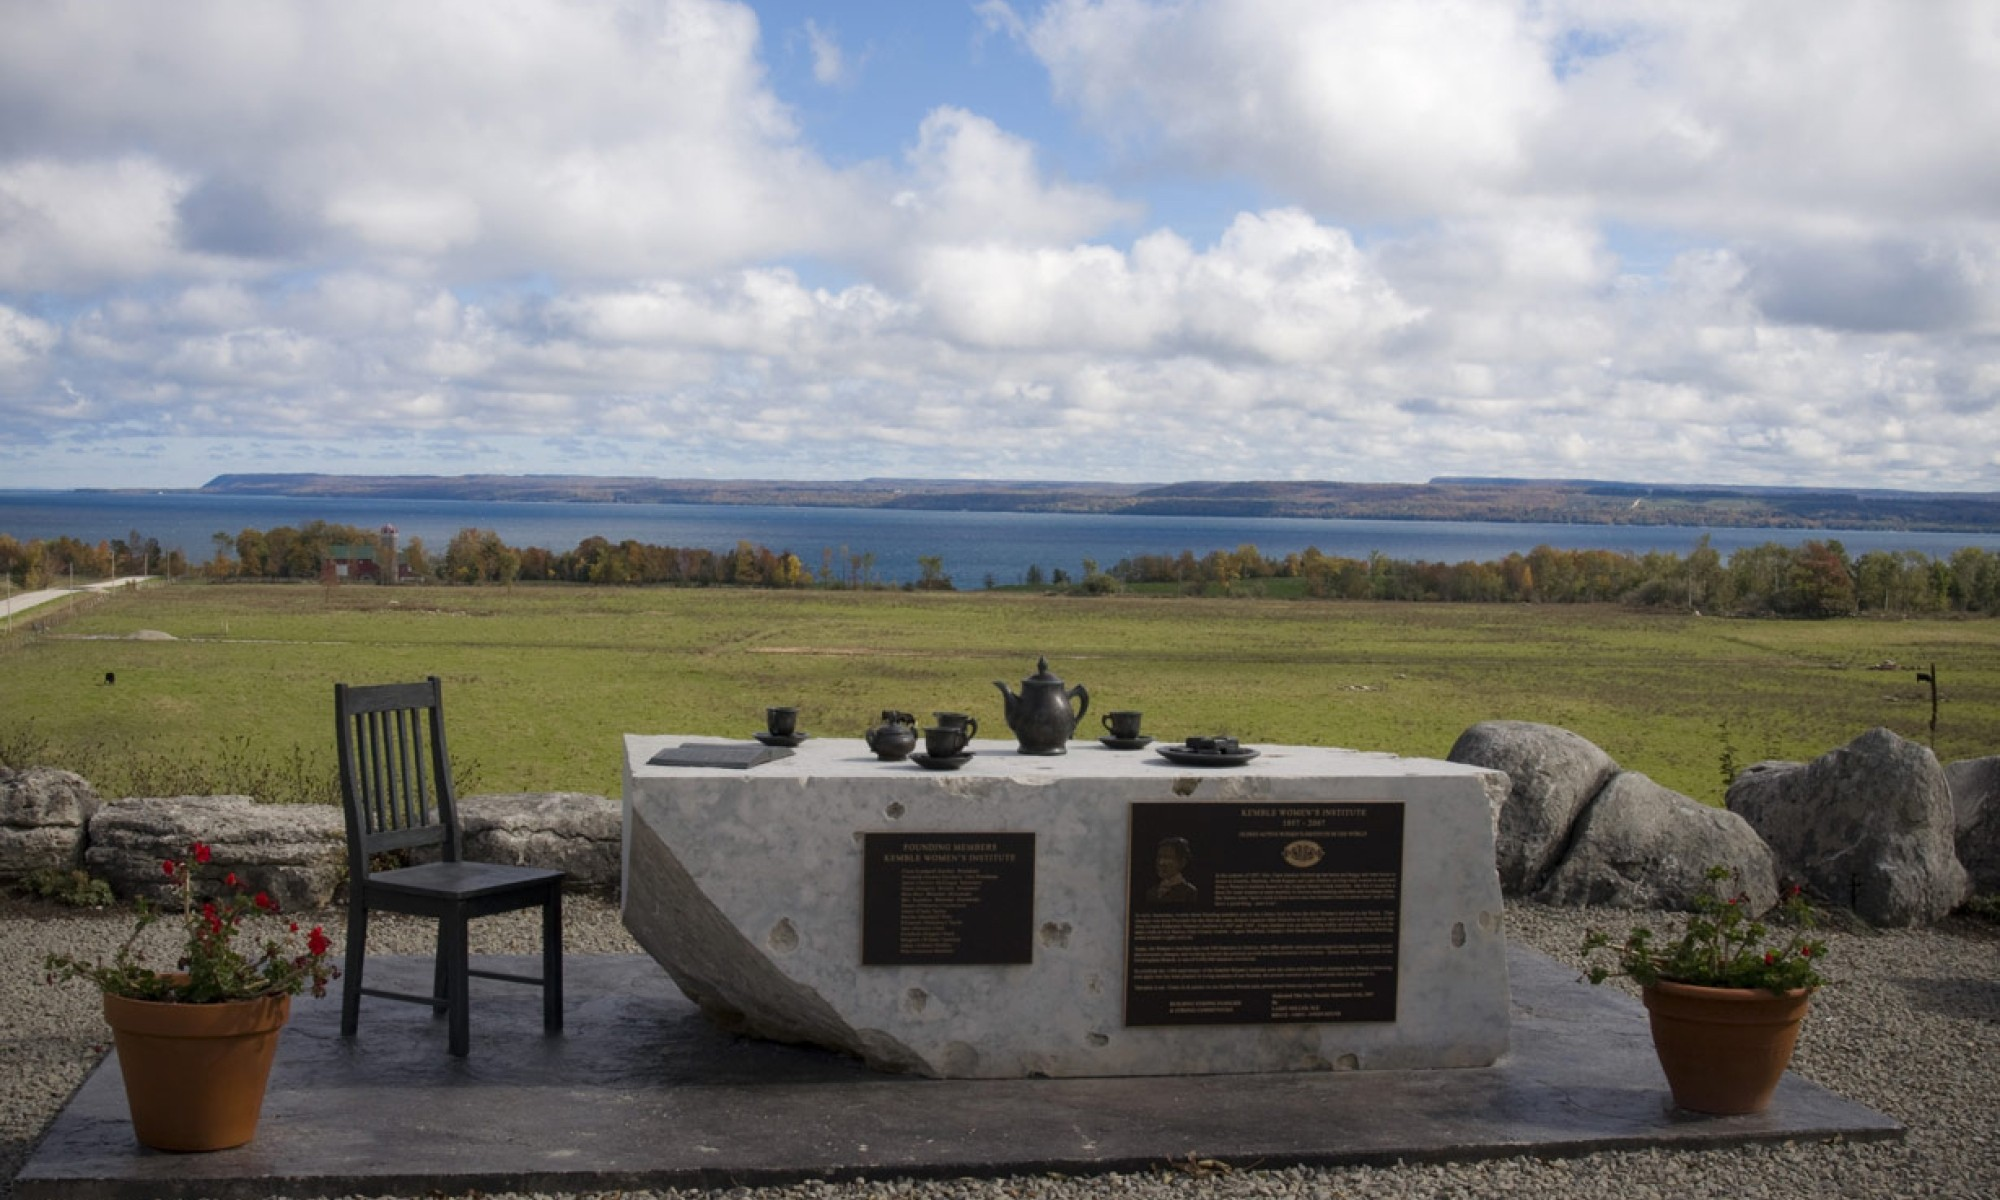 Kemble Women's Institute Lookout with table and tea set